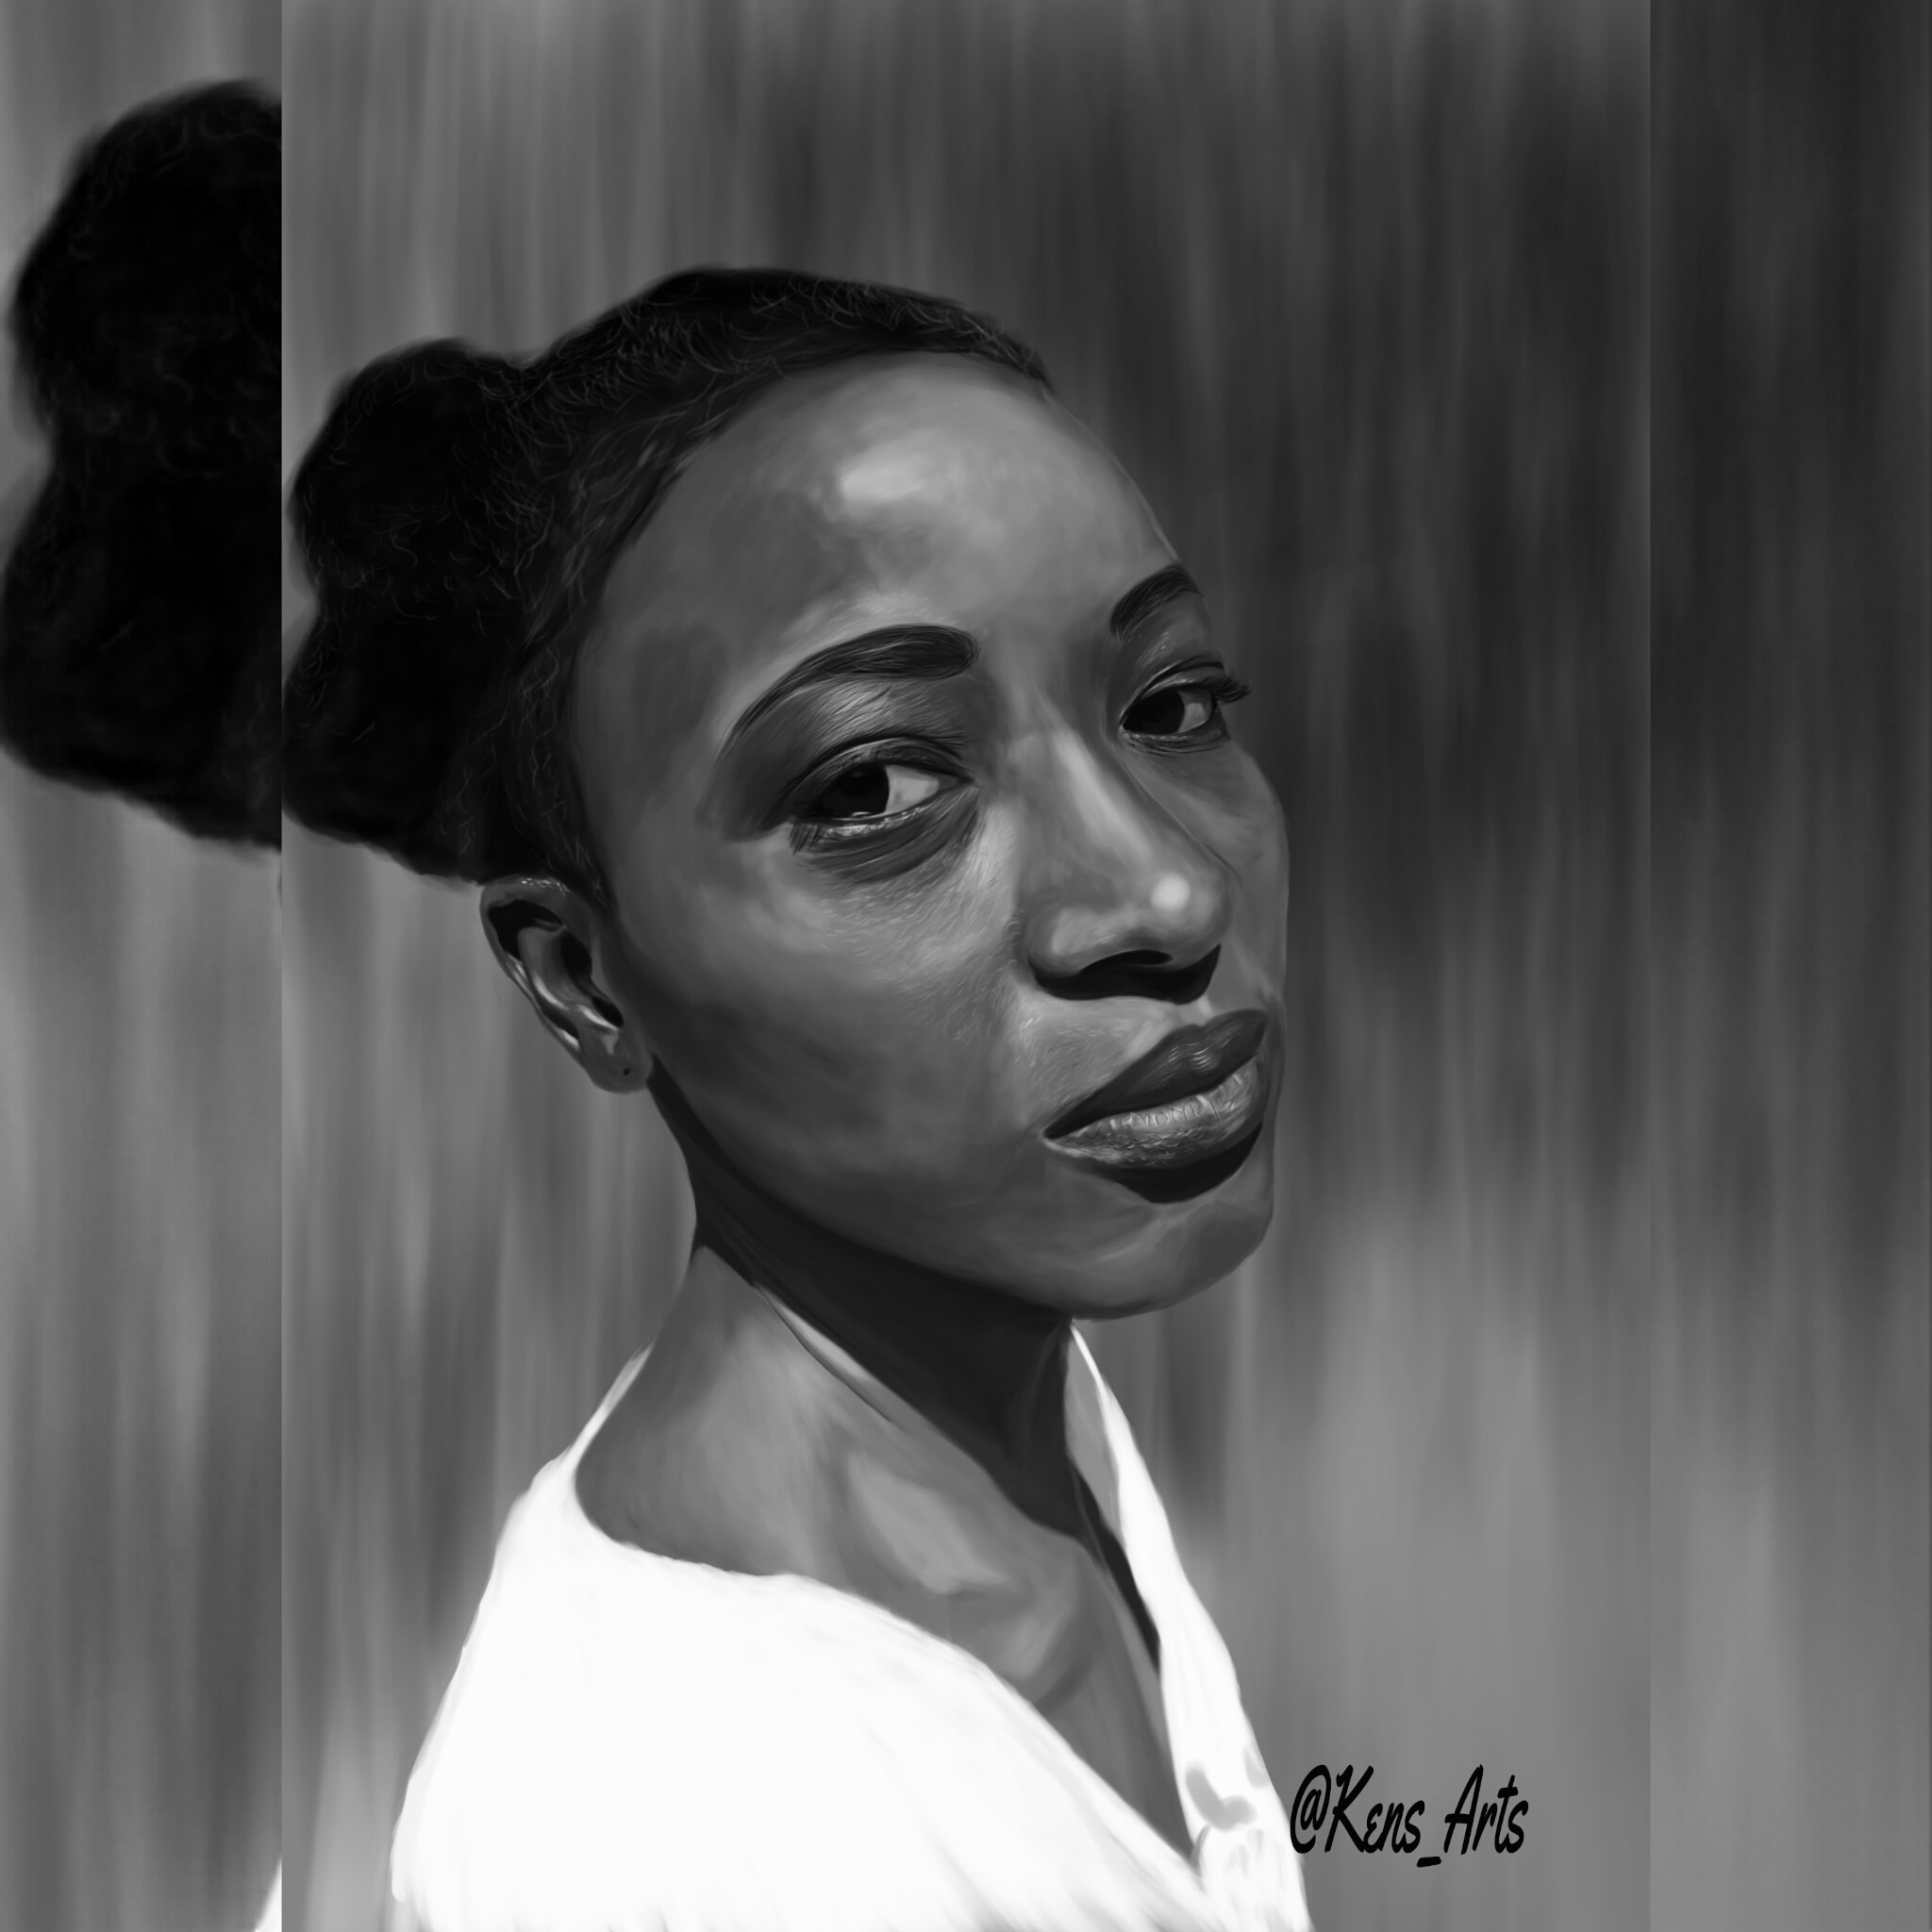 Paint A Portrait In My Digital Grayscale Style By Ken Toons